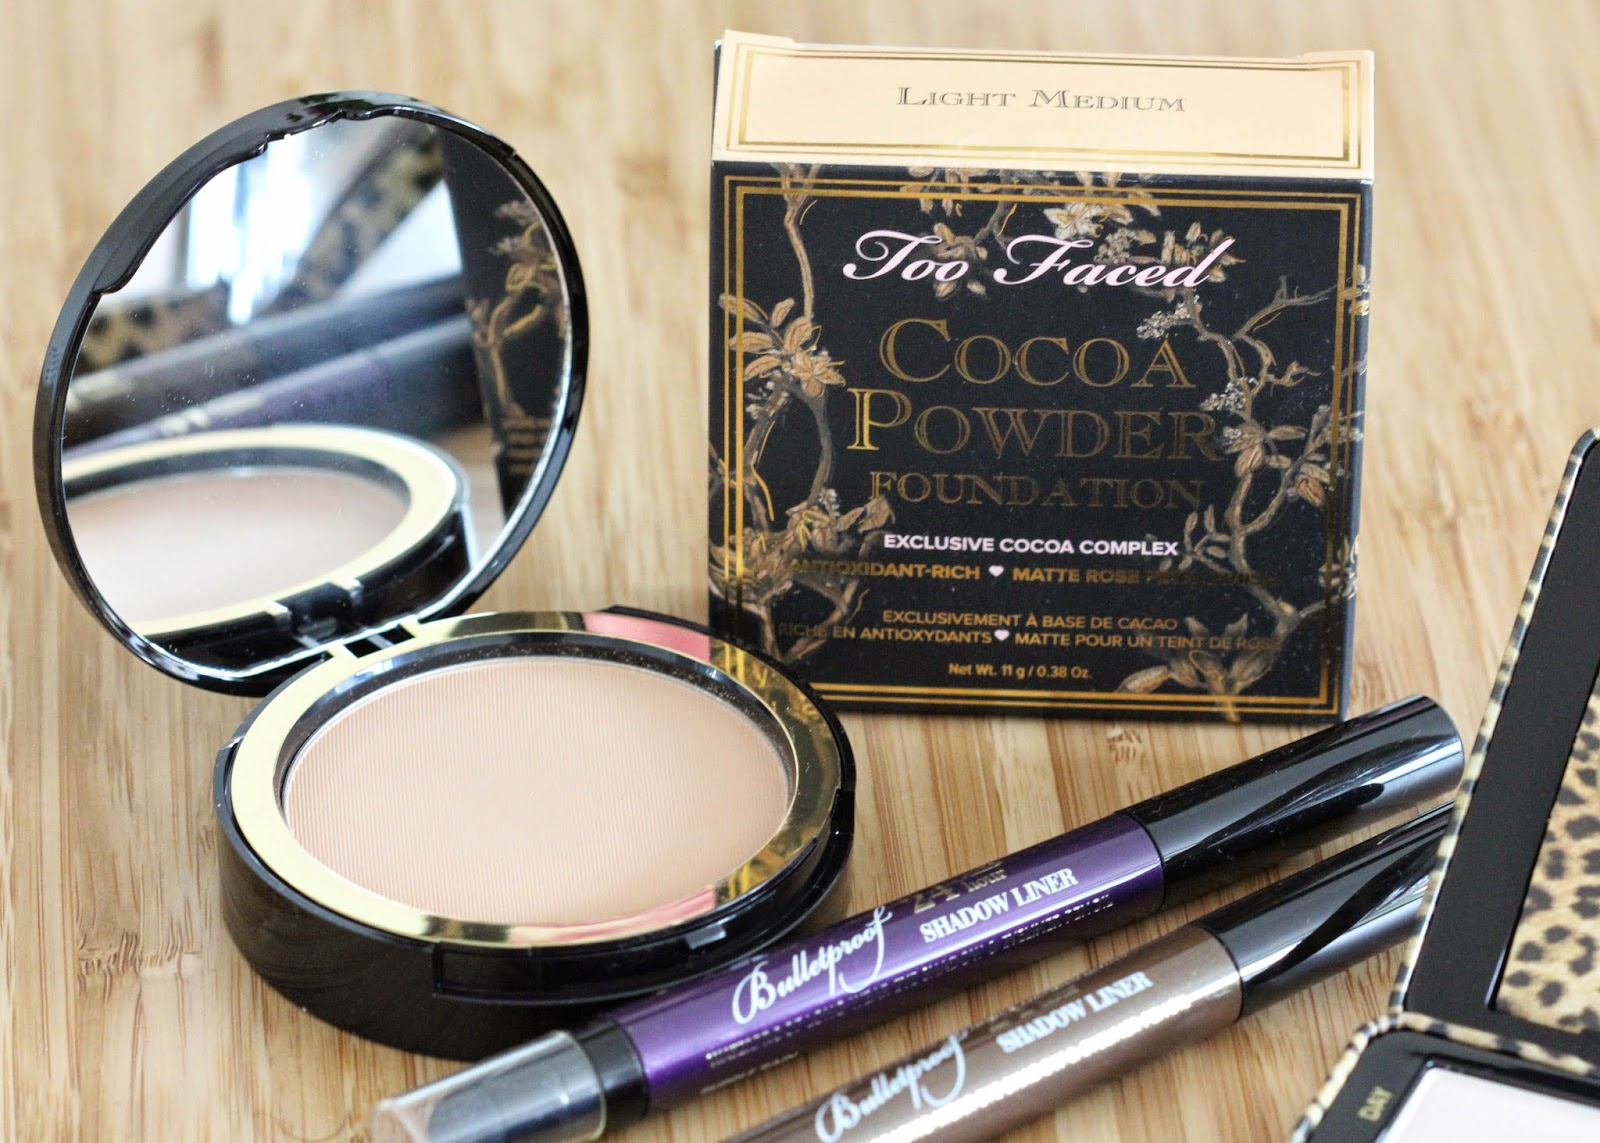 New make up from Too Faced: Bulletproof eyeliner, Cat Eyes palette and Cocoa Powder Foundation